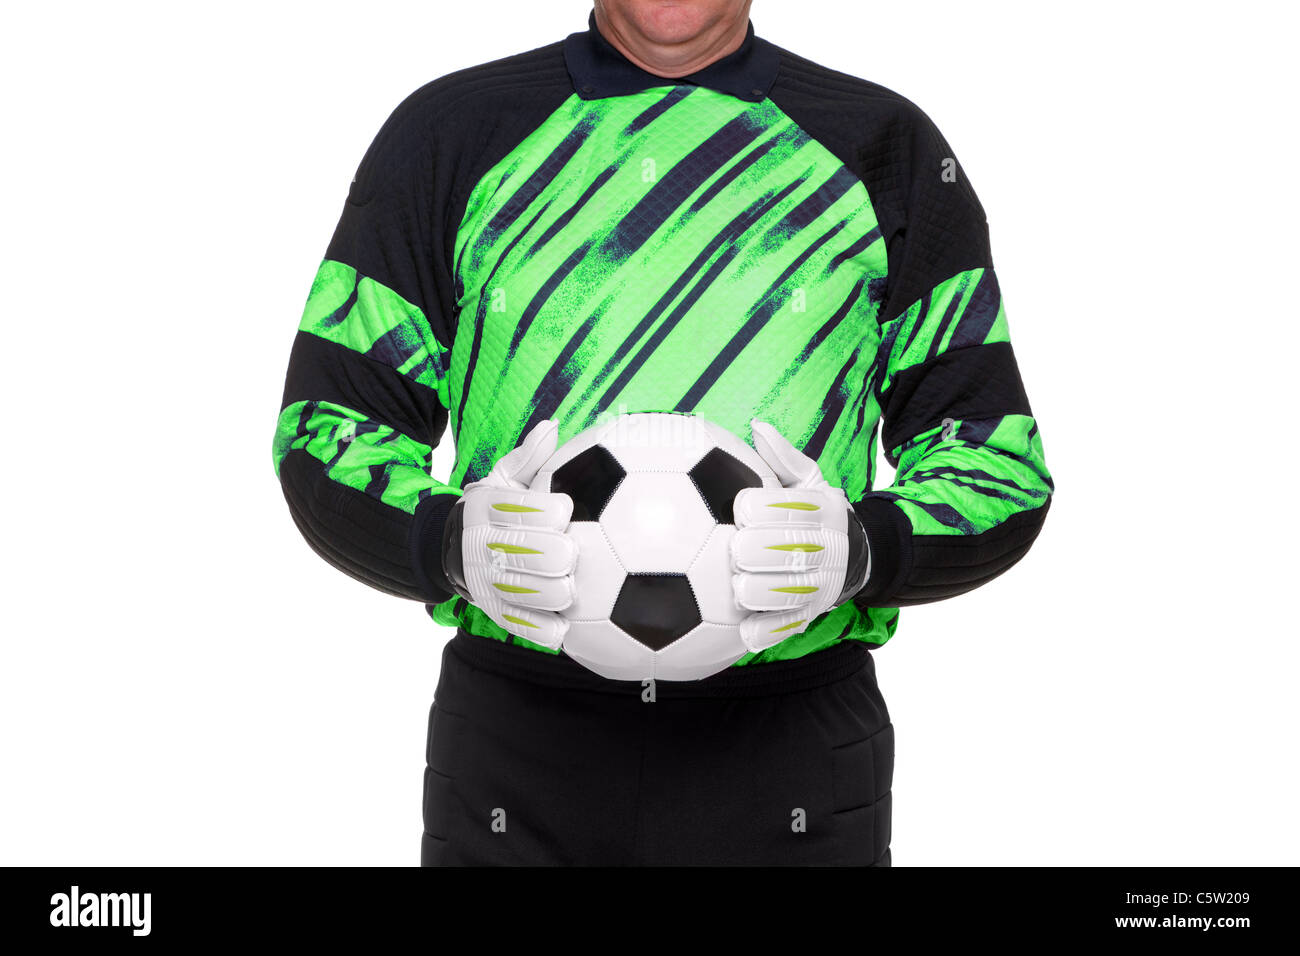 Photo of a football or soccer goalkeeper wearing gloves and holding a ball, isolated on a white background. - Stock Image